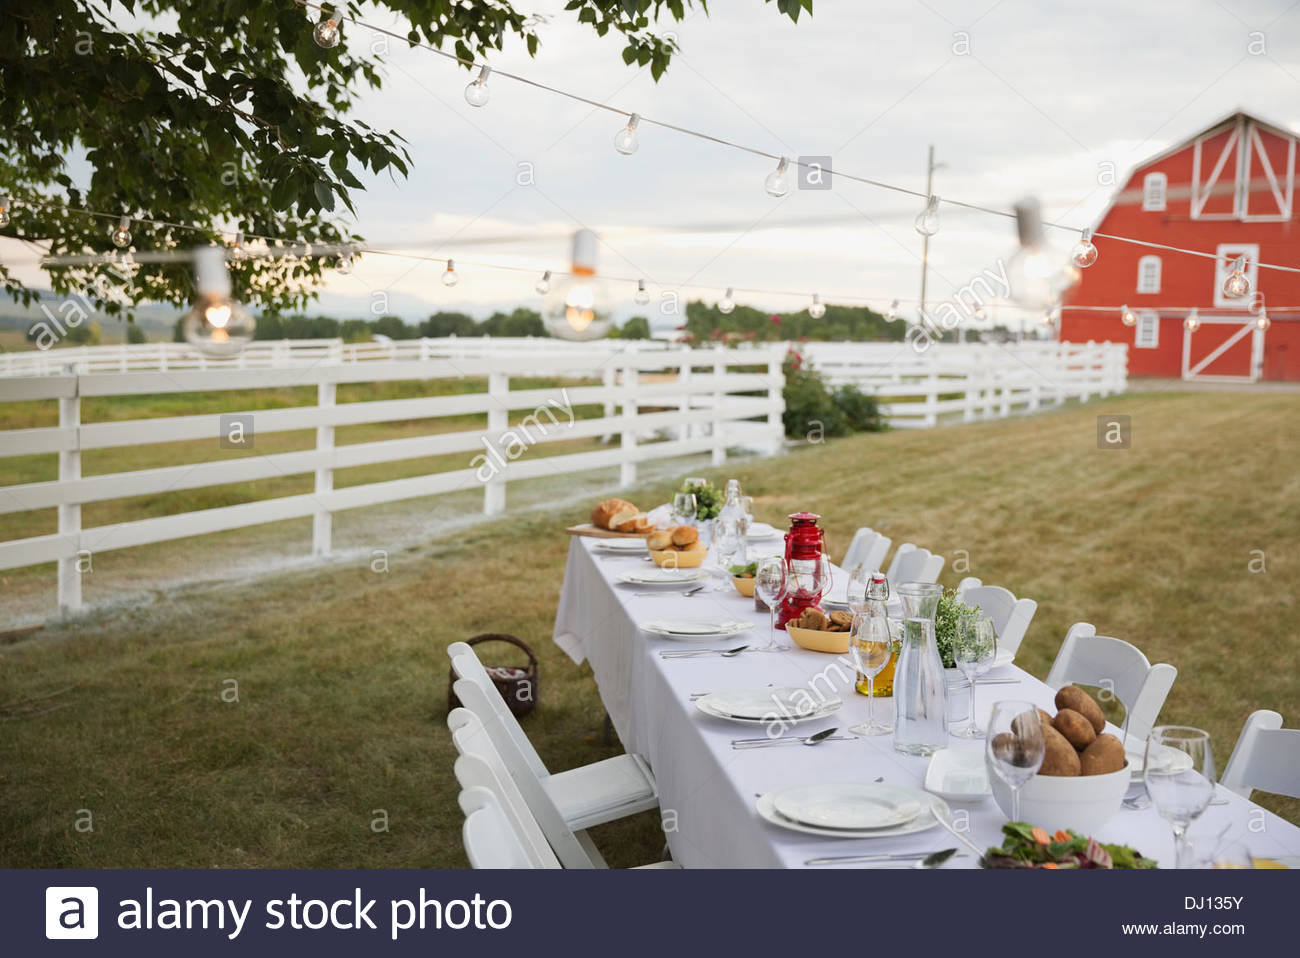 Empty dining table set up outdoors on farm - Stock Image